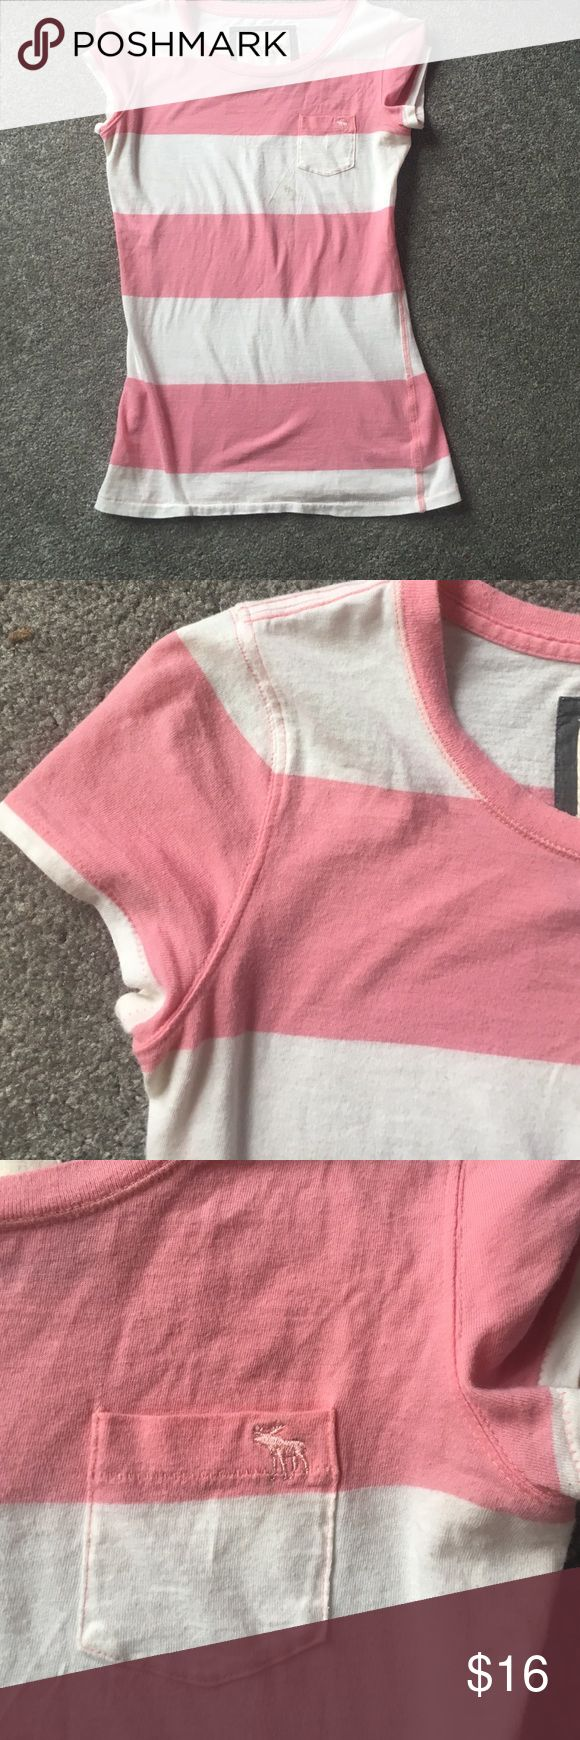 Abercrombie and fitch short sleeve shirt Abercrombie and fitch tshirt. Light pink and white stripes. It has kind of a cap sleeve. Like new no flaws!! Will be cleaned before being mailed out! 20% off bundles and excepting all reasonable offers. Would fit xsmall also Abercrombie & Fitch Tops Tees - Short Sleeve